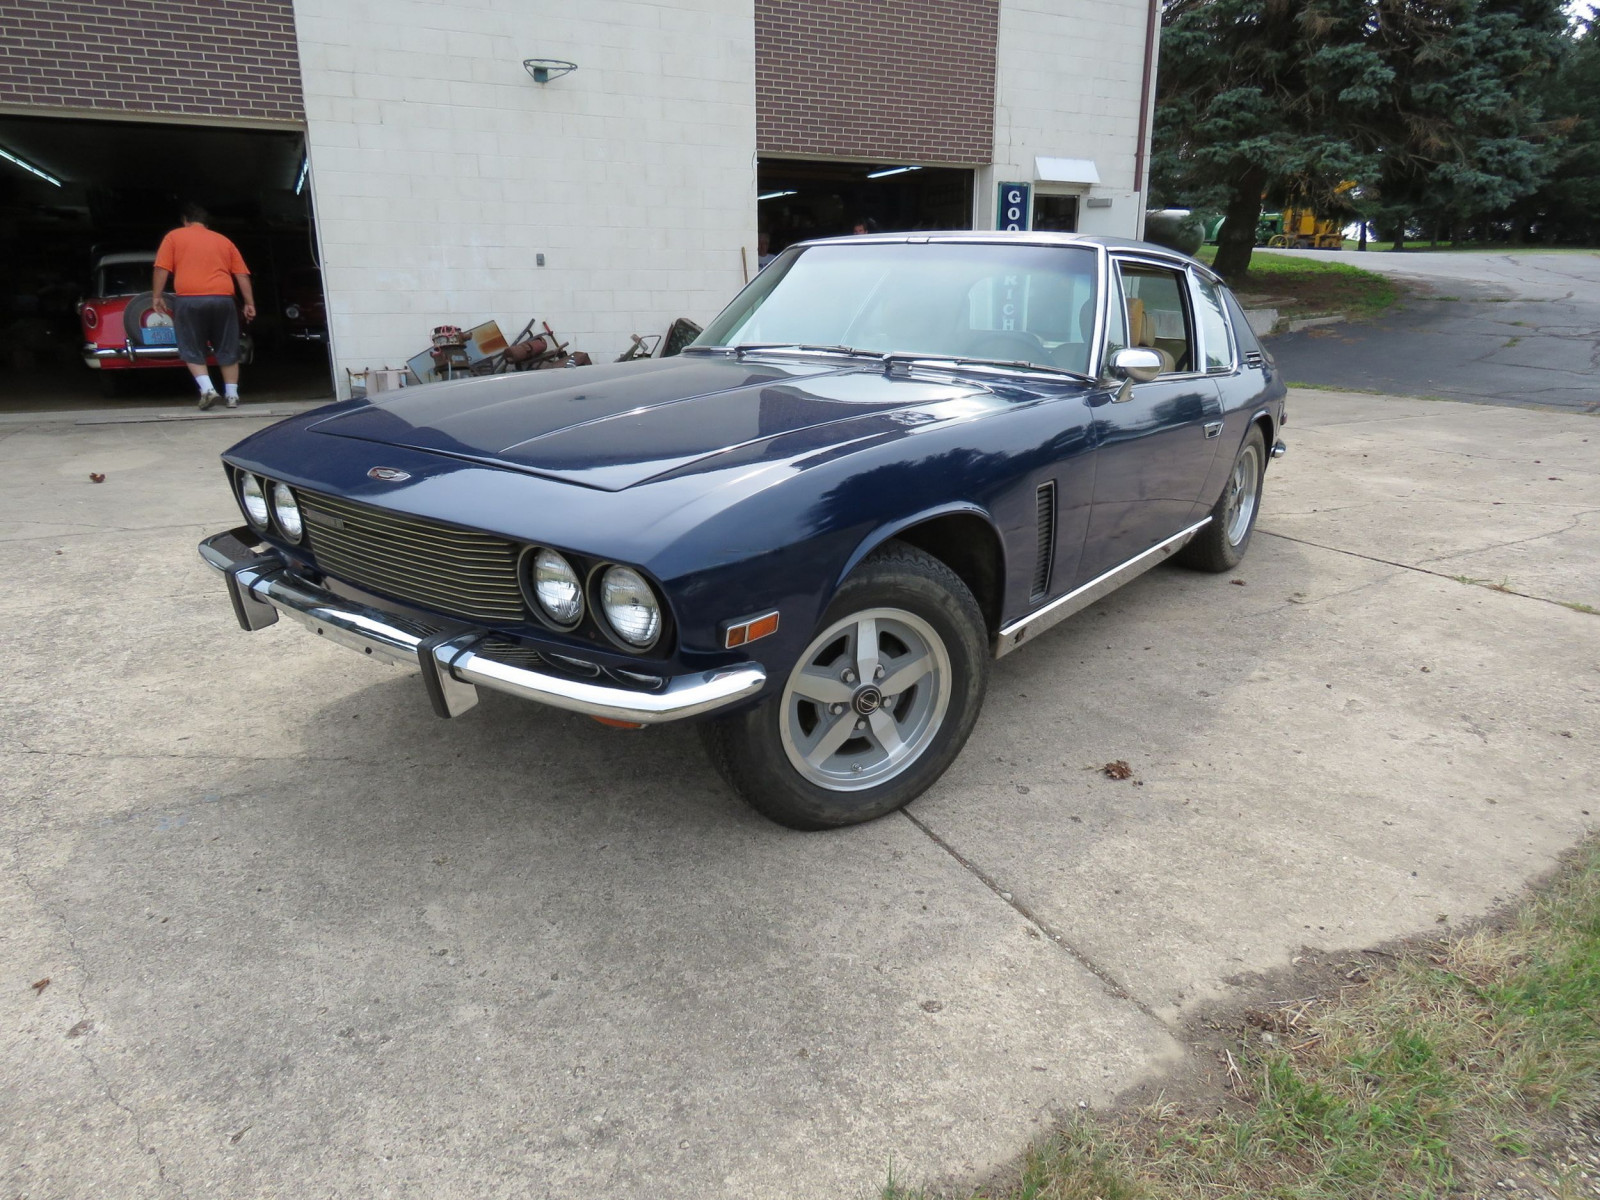 1973 Jensen Interceptor III Coupe - Image 3